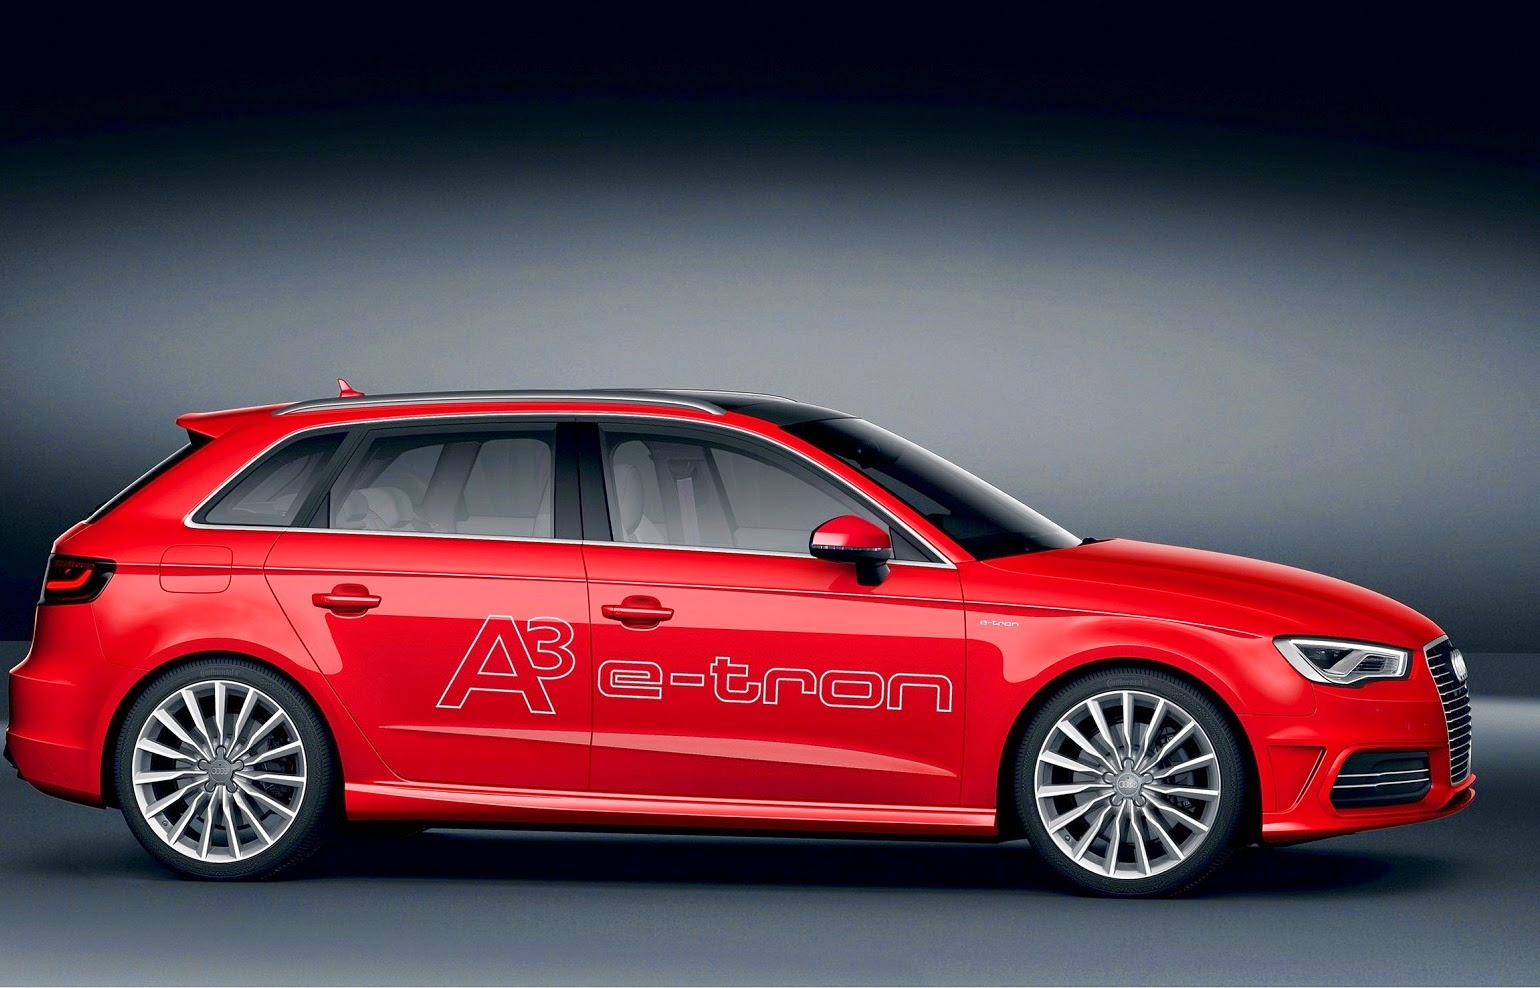 the audi a3 sportback e tron starts in europe car reviews new car pictures for 2018 2019. Black Bedroom Furniture Sets. Home Design Ideas